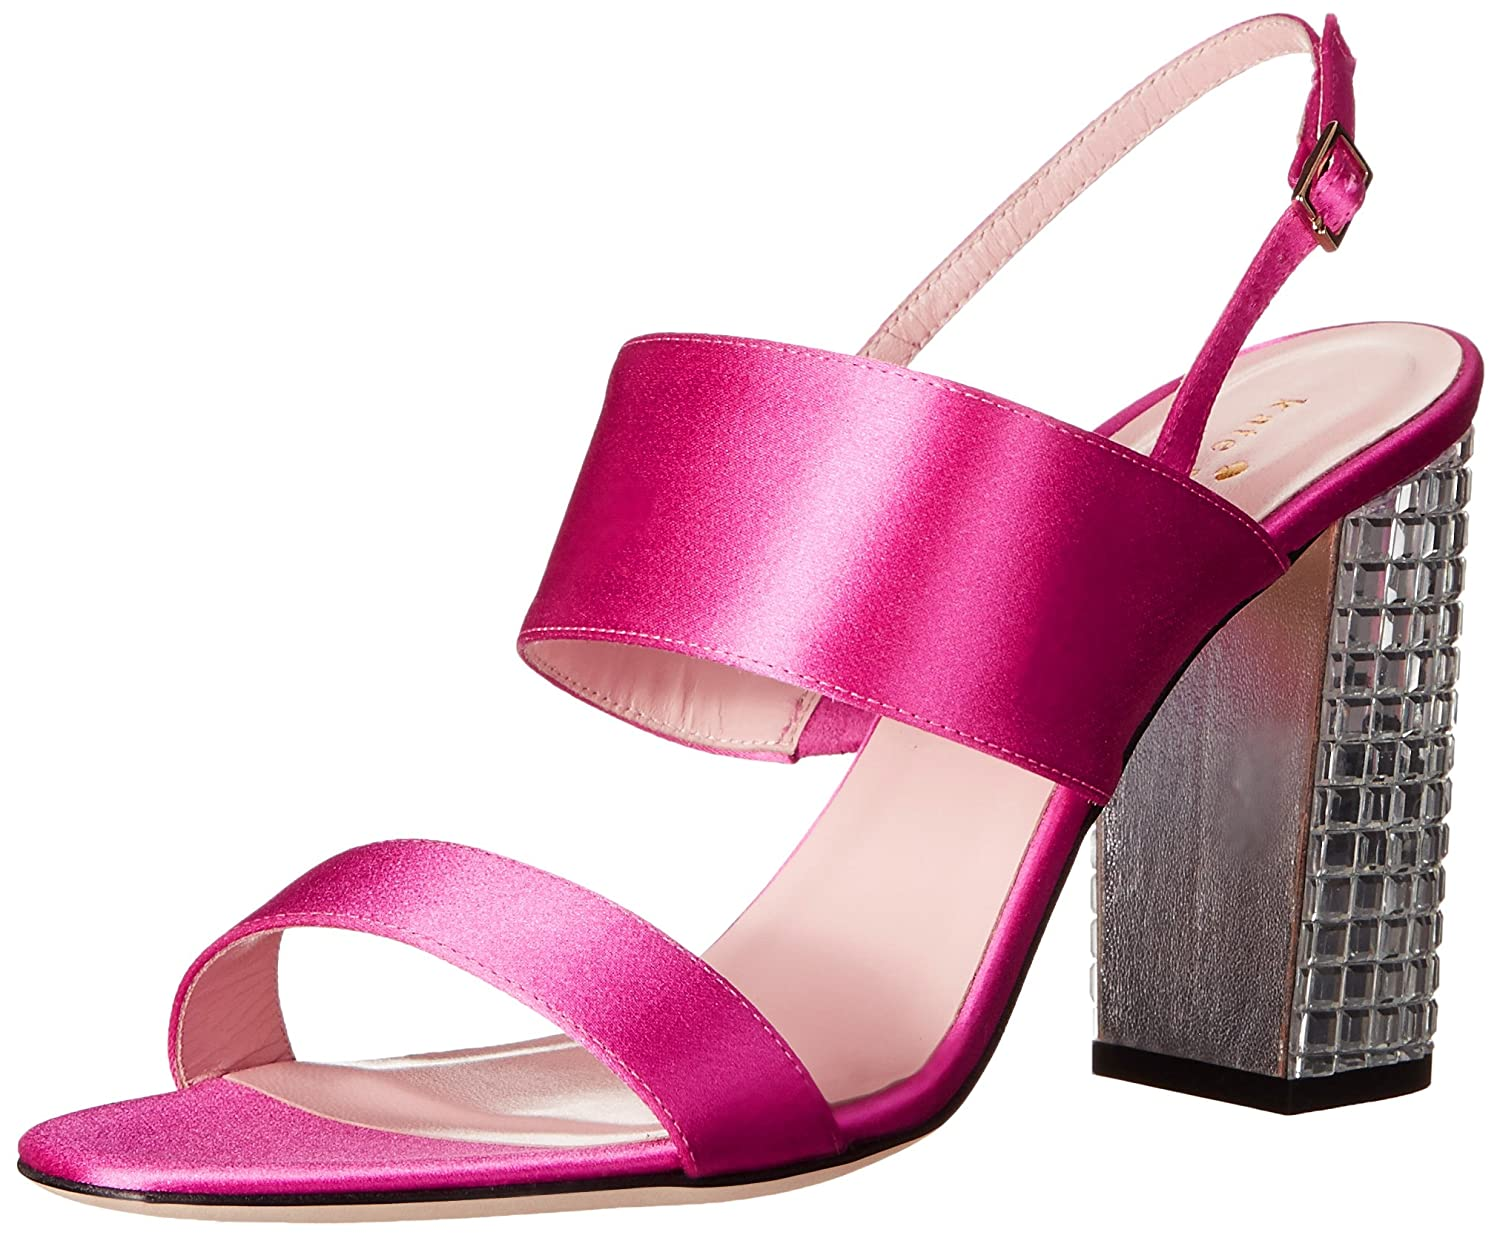 Women's Ilsa Hot Pink Glossy Dress Sandals by Kate Spade New York - DeluxeAdultCostumes.com